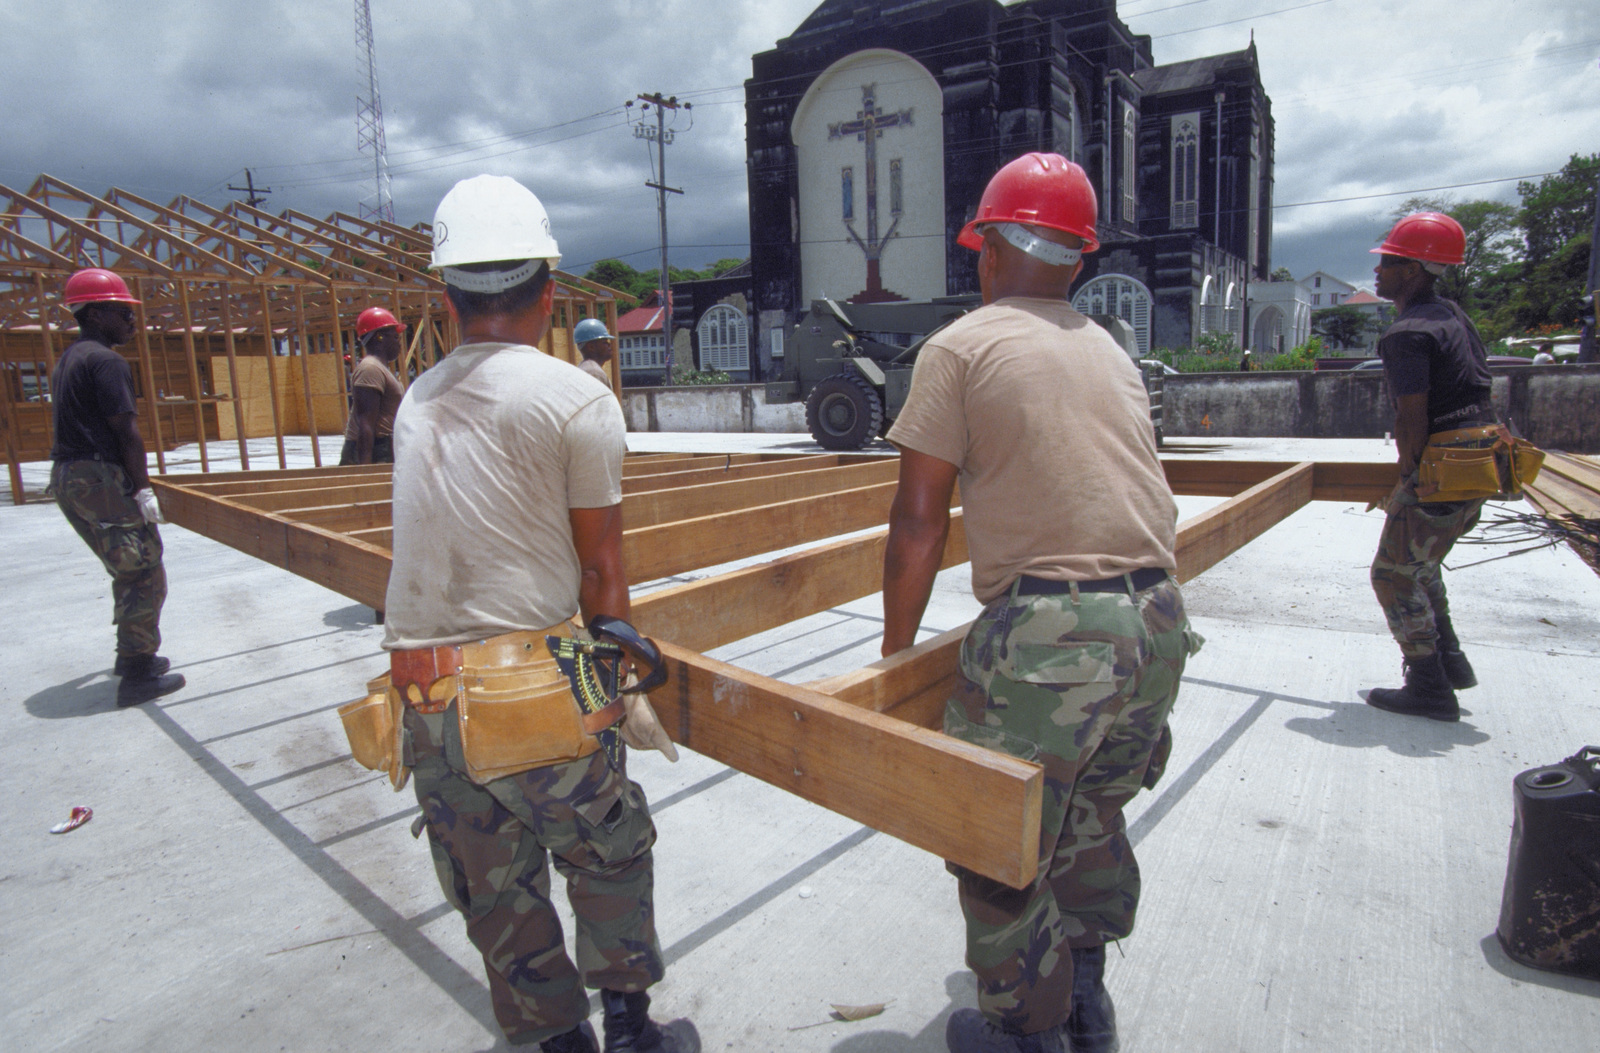 Members from the 820th Red Horse Squadron, Nellis Air Force Base, Nevada move framing into place as they work on a new school building. The school is being rebuilt to replace the old St. Mary's High School in downtown Georgetown as part of the first combined humanitarian and civic assistance exercise conducted between the United States and Guyana. Military personnel from Air Force, Air Force Reserve & National Guard, Army, Army National Guard and Marine CorpS participated in the exercise which included engineering and medical readiness training